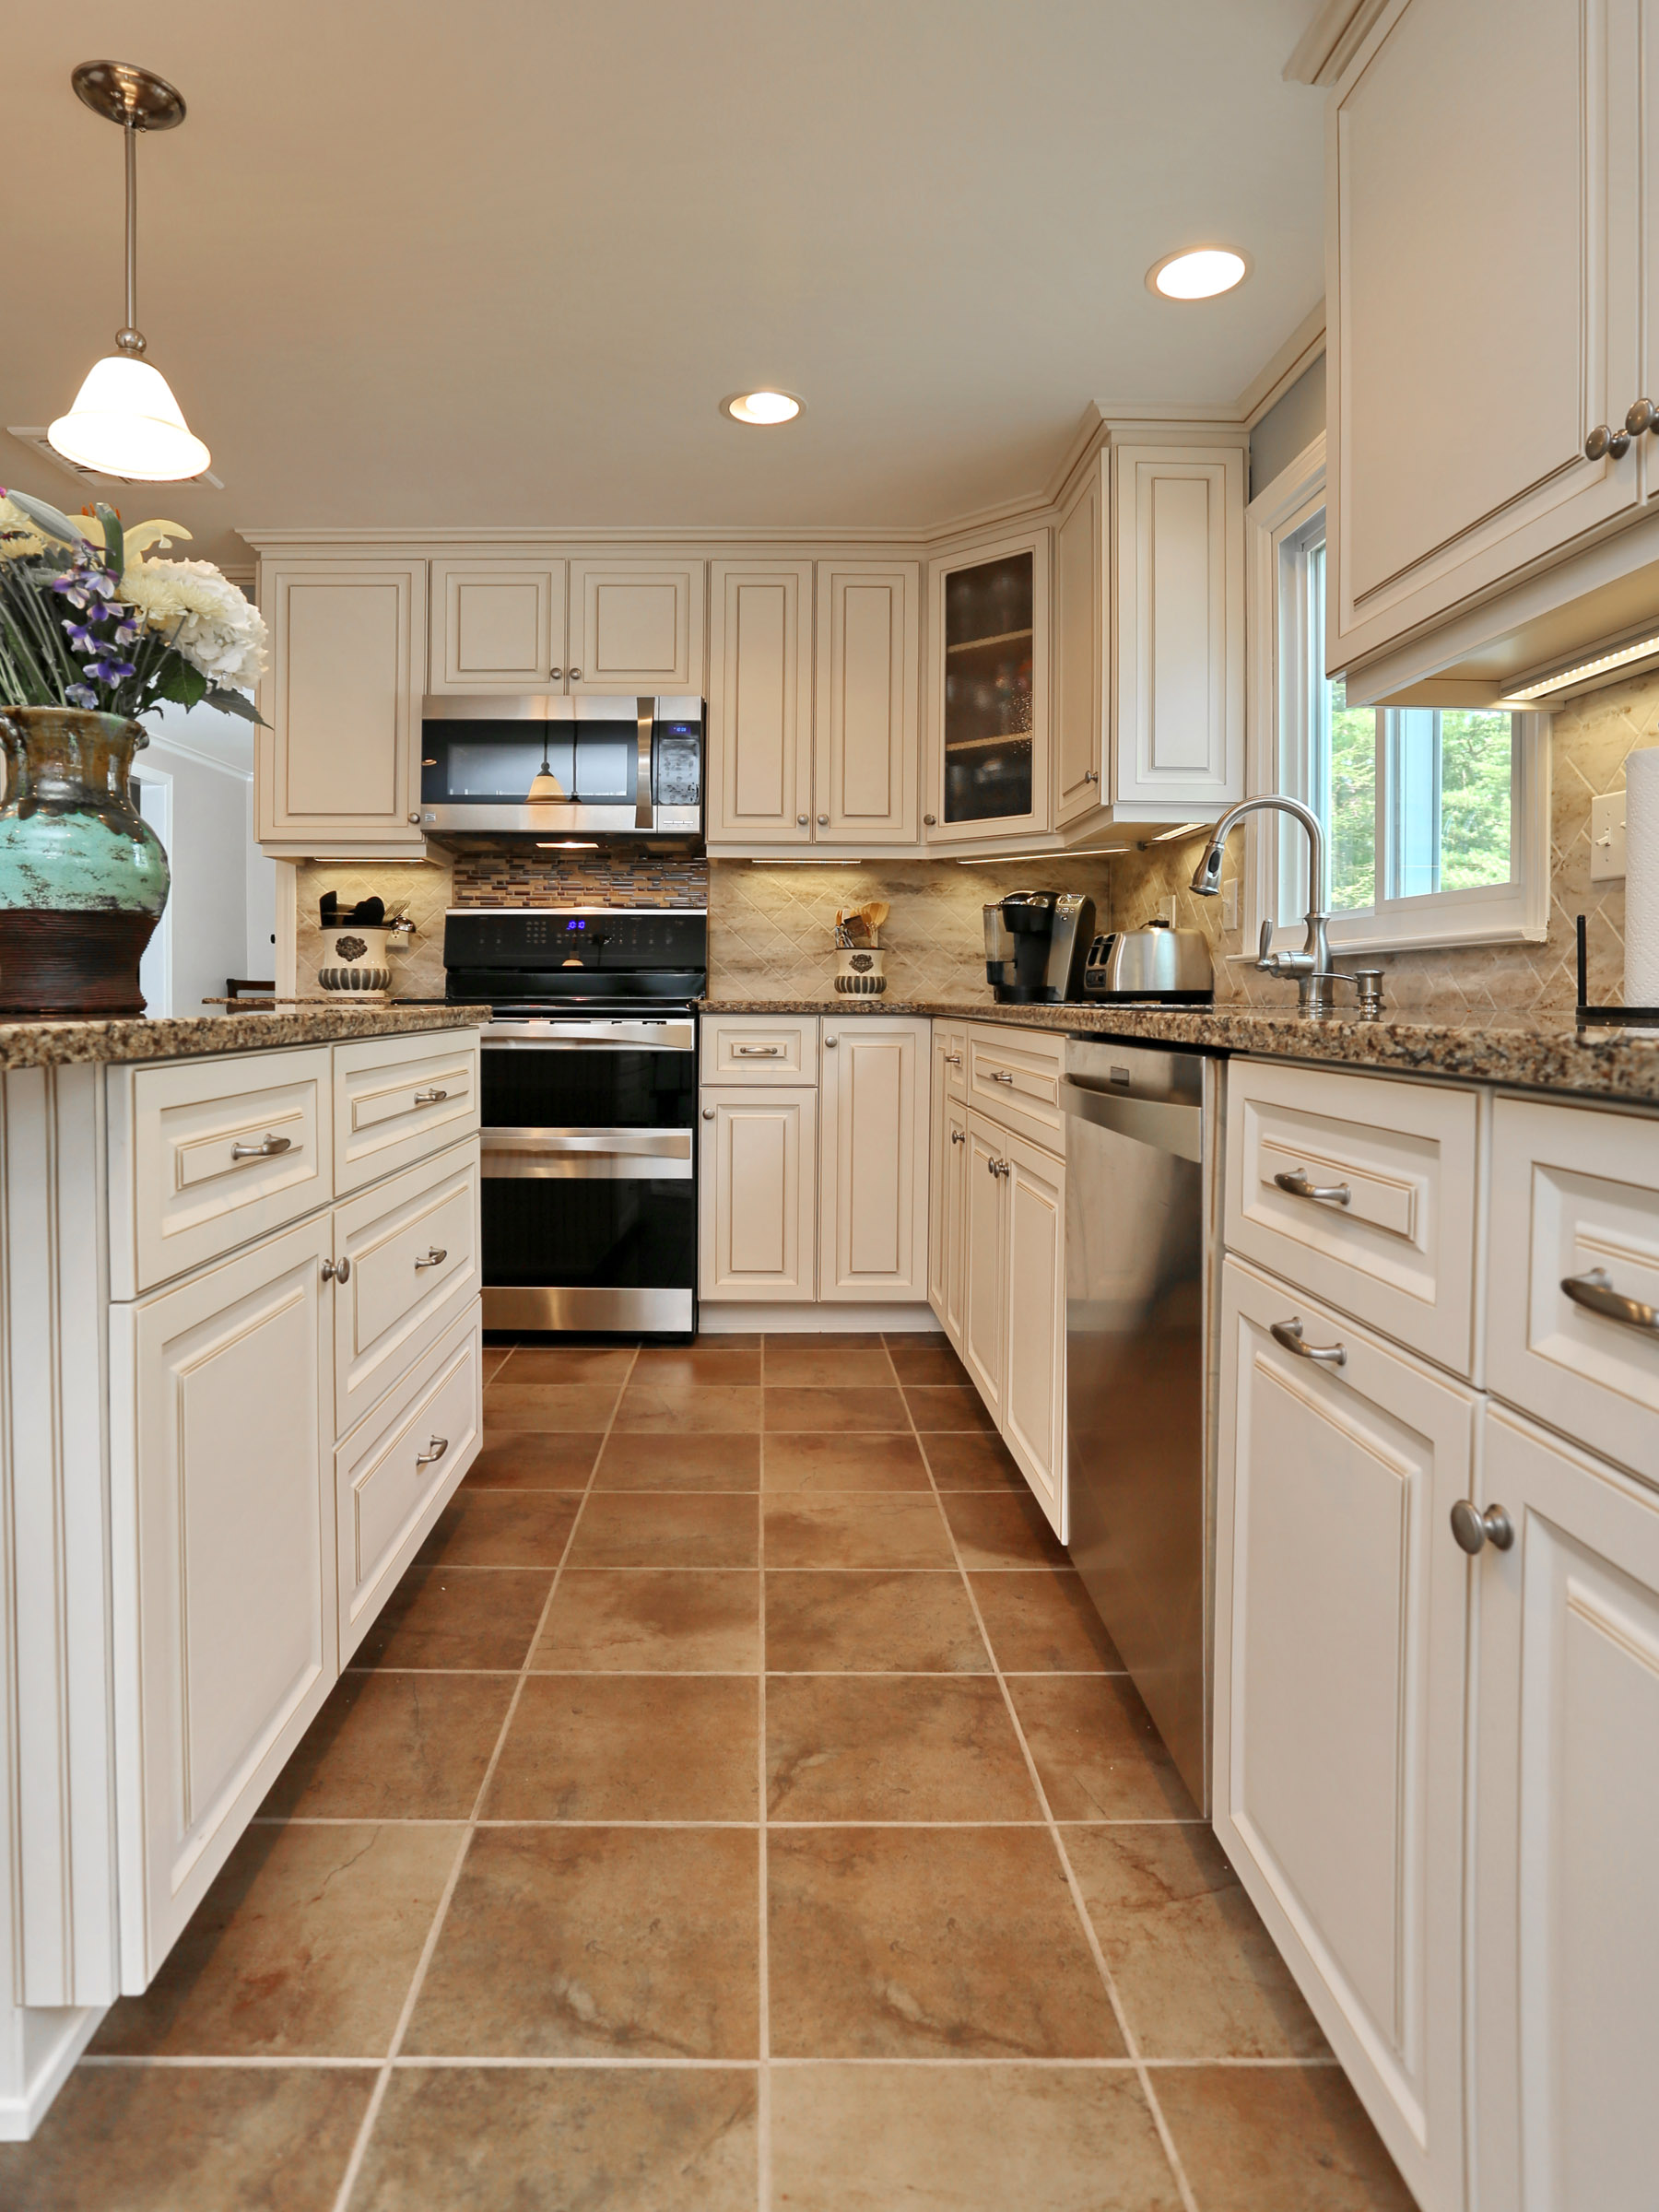 Cambria Canterbury countertops and Antique White cabinets